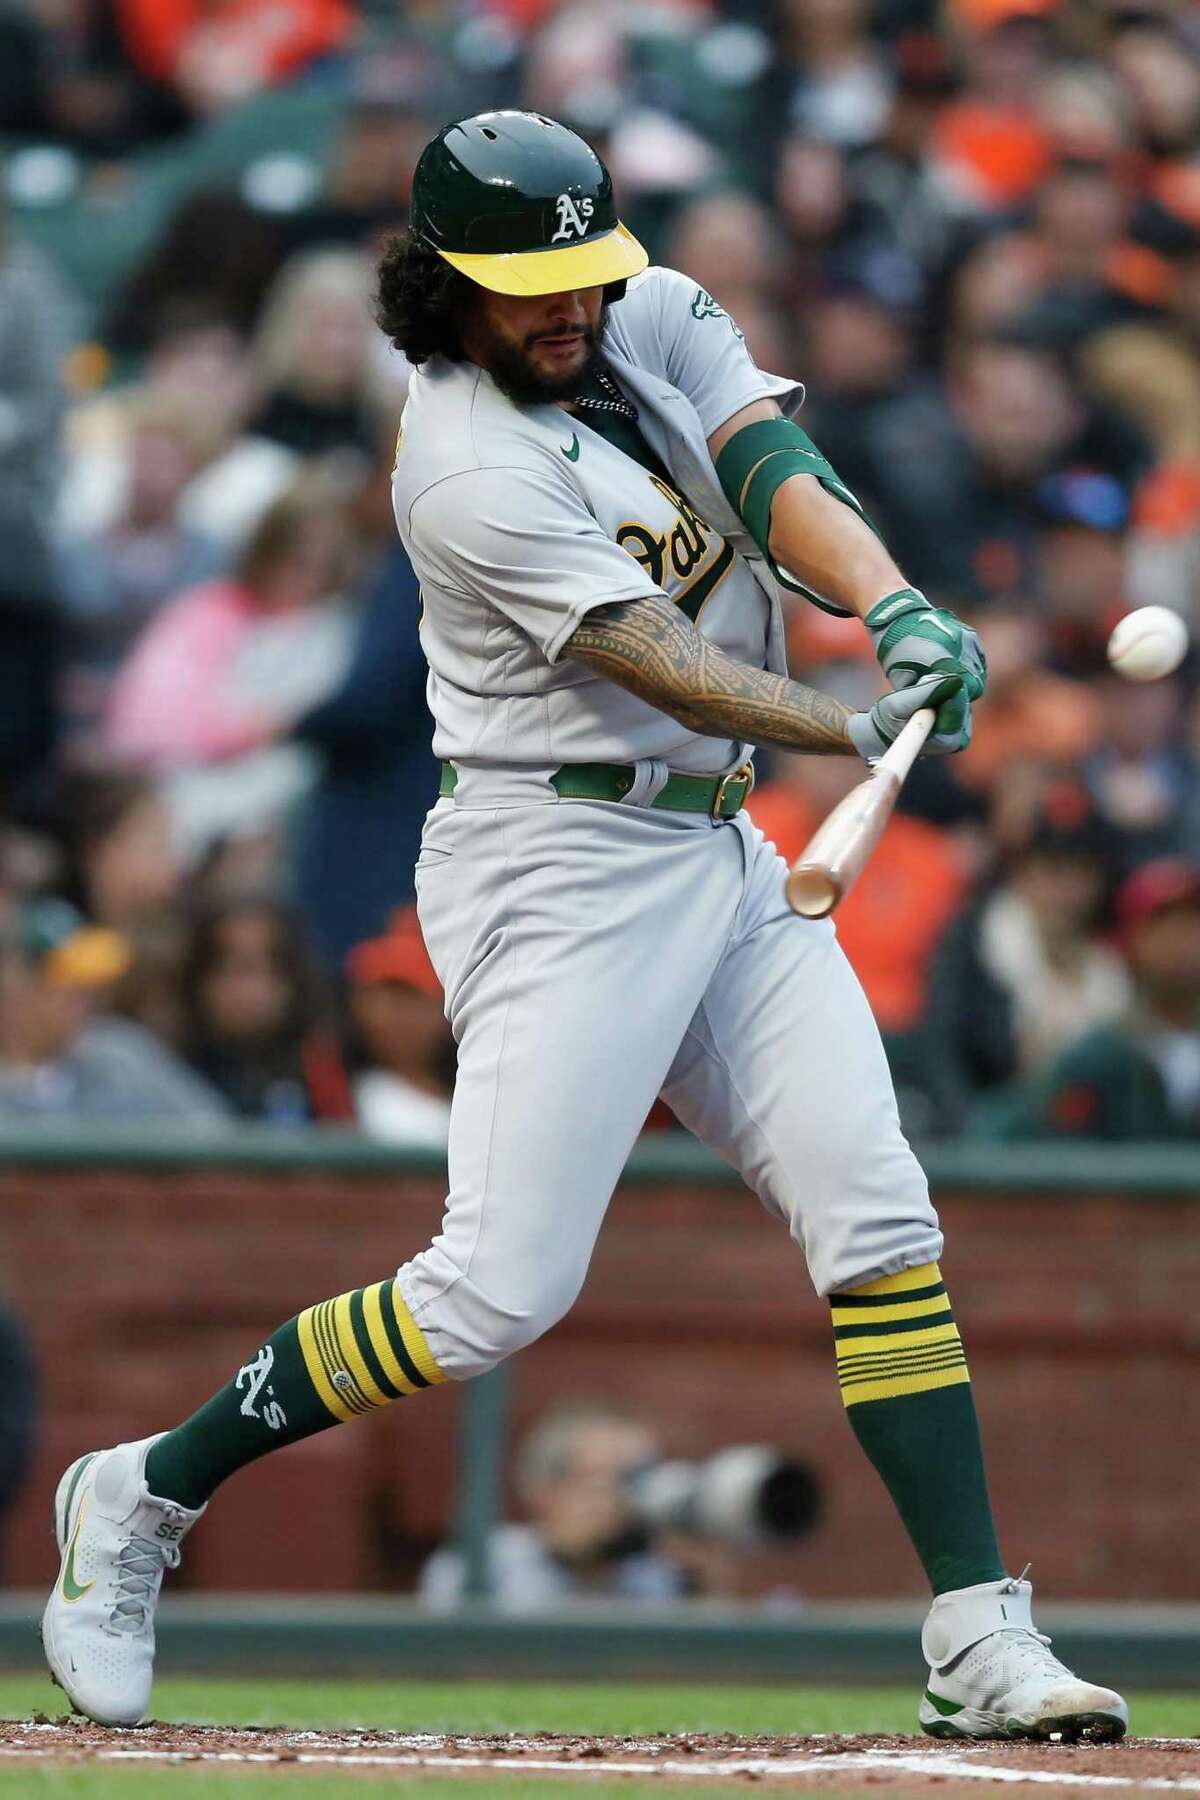 SAN FRANCISCO, CALIFORNIA - JUNE 25: Sean Manaea #55 of the Oakland Athletics hits a double in the top of the third inning against the San Francisco Giants at Oracle Park on June 25, 2021 in San Francisco, California. (Photo by Lachlan Cunningham/Getty Images)